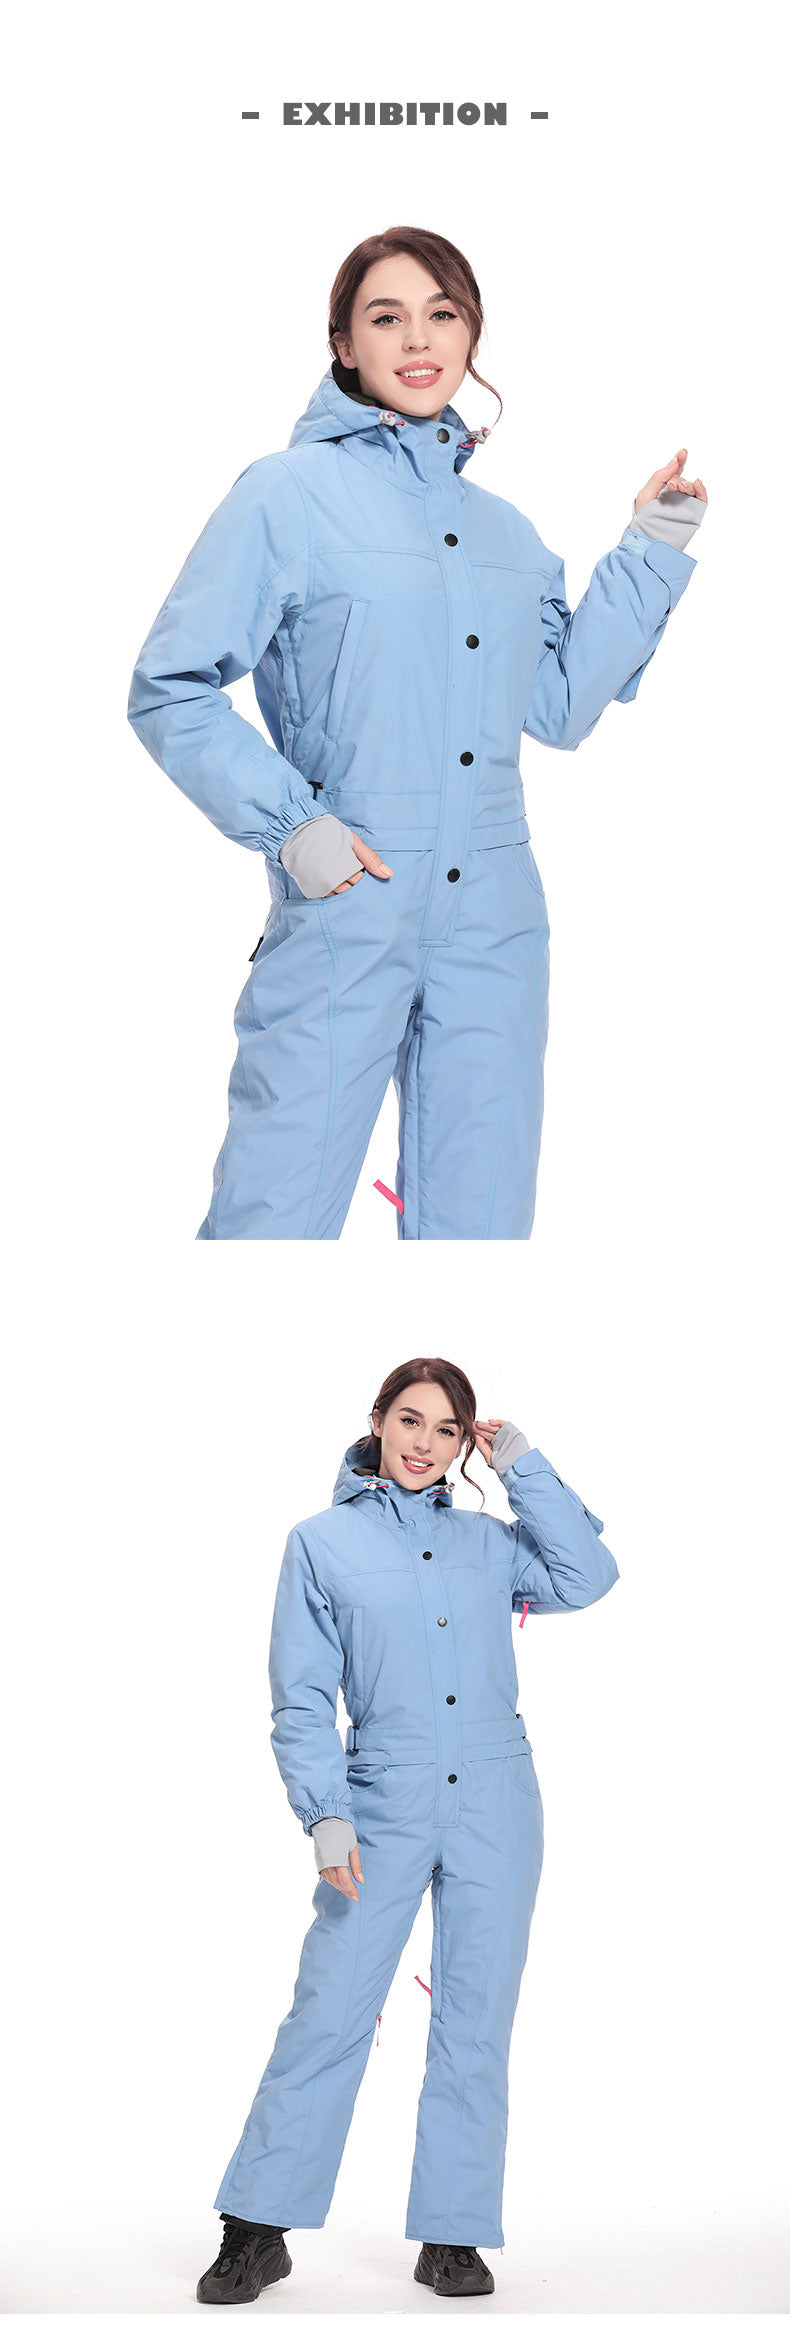 Women's SNBOCON Backcountry Epic Overall One Piece Ski Suits Winter Snowsuits